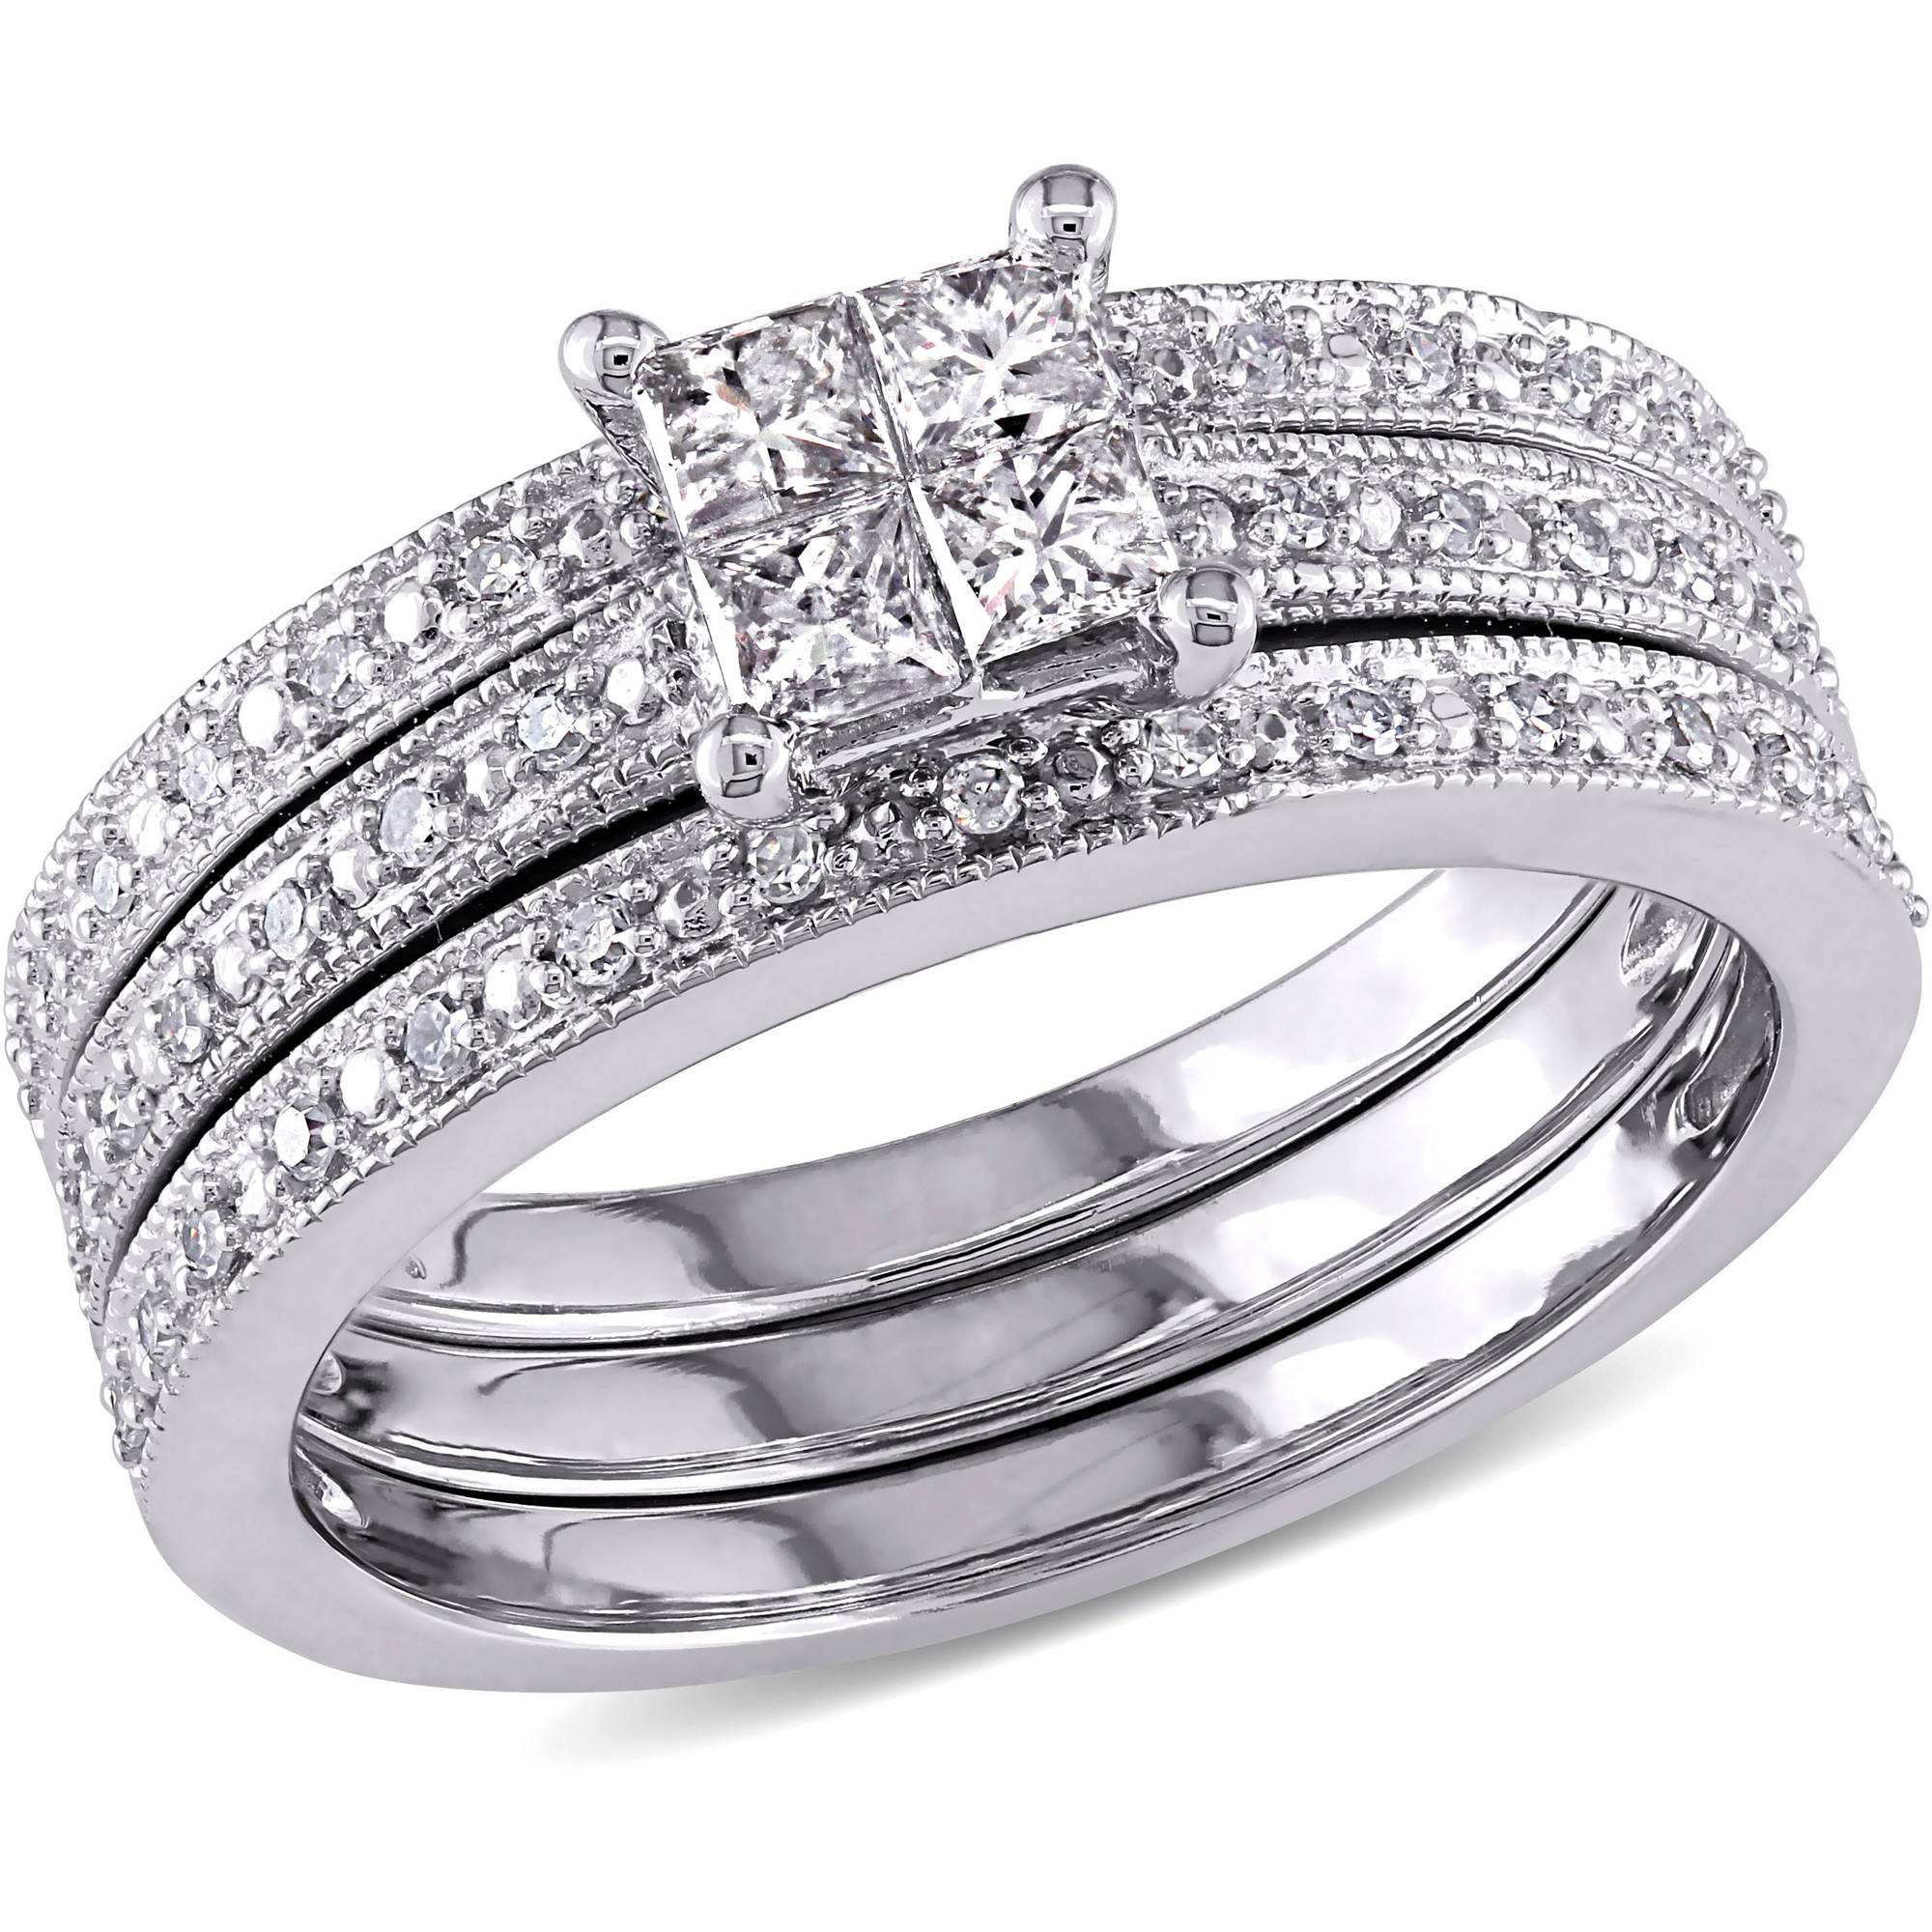 3/8 Carat T.W. Princess and Round-cut Diamond 10kt White Gold Bridal Set